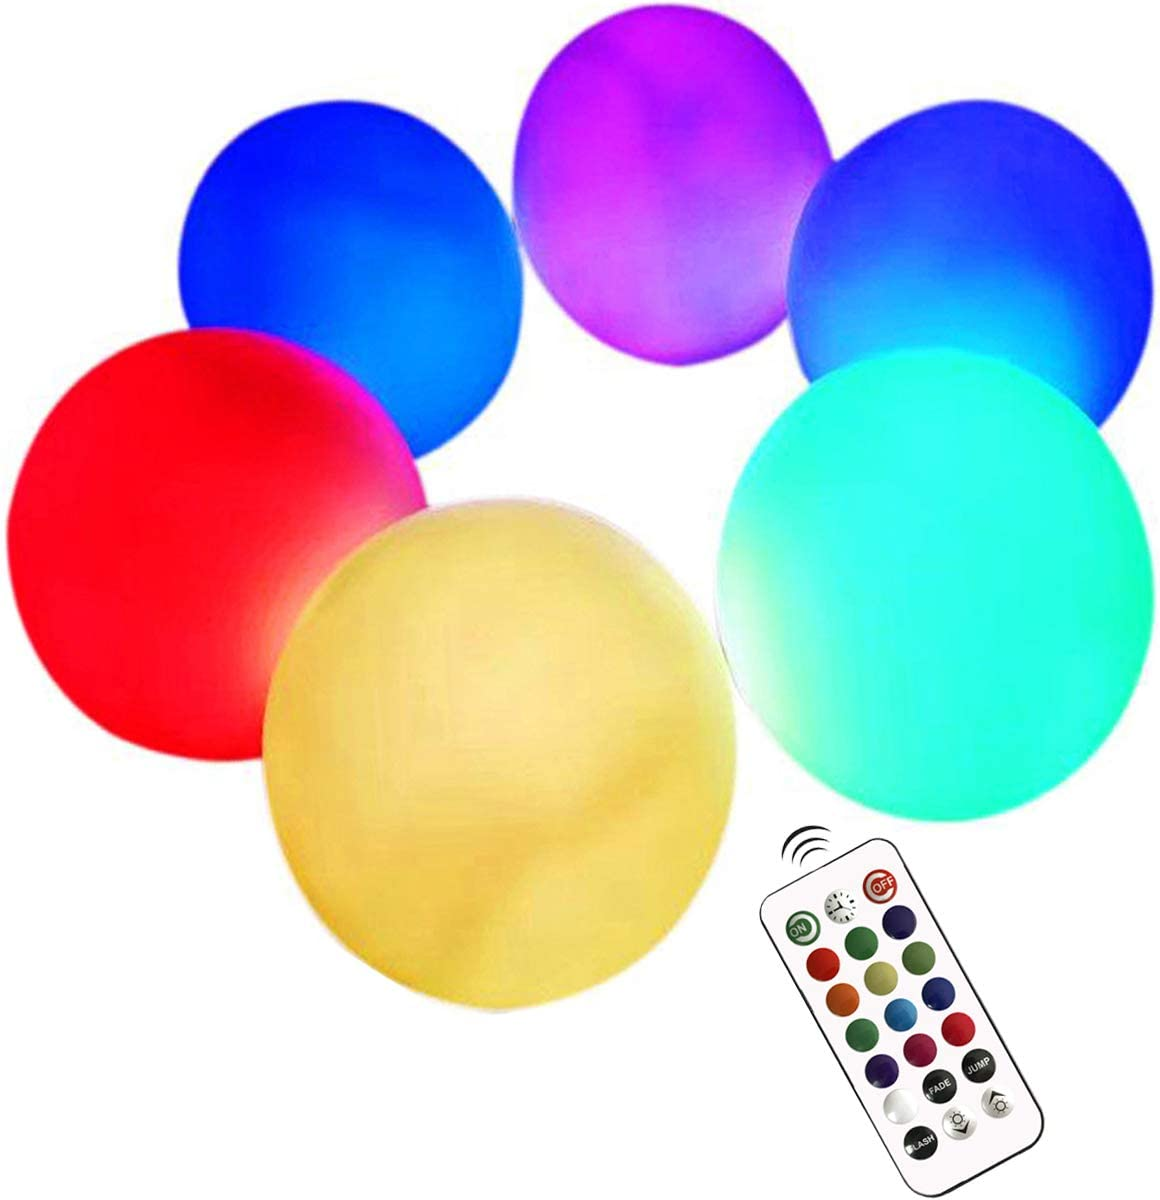 LED Ball Light 3-inch Waterproof Floating Pool Lights, 6 Pack Color Changing Mood Light Garden Decorative Orb Balls, Light Up Centerpiece Ball Lamps Nightlights for Christmas Indoor Outdoor Decoration